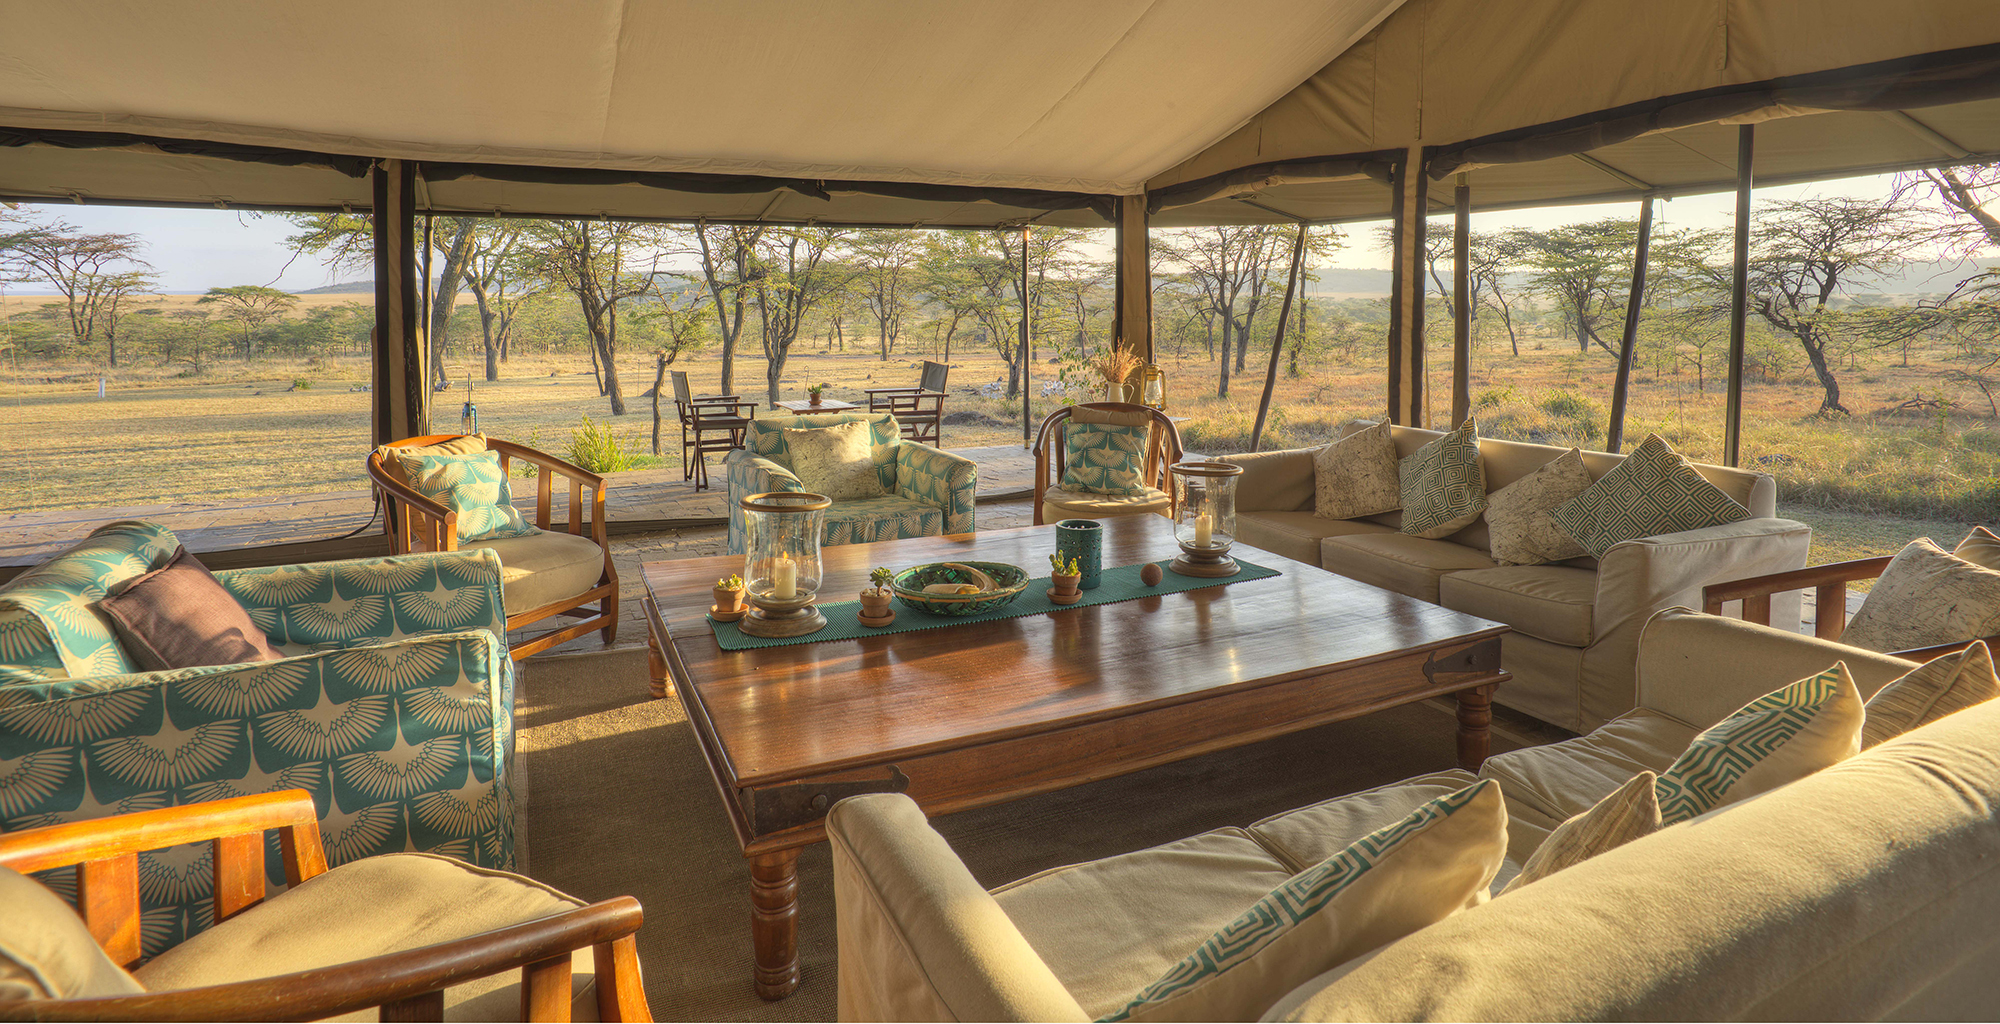 Kenya-Kicheche-Bush-Camp-Living-Room